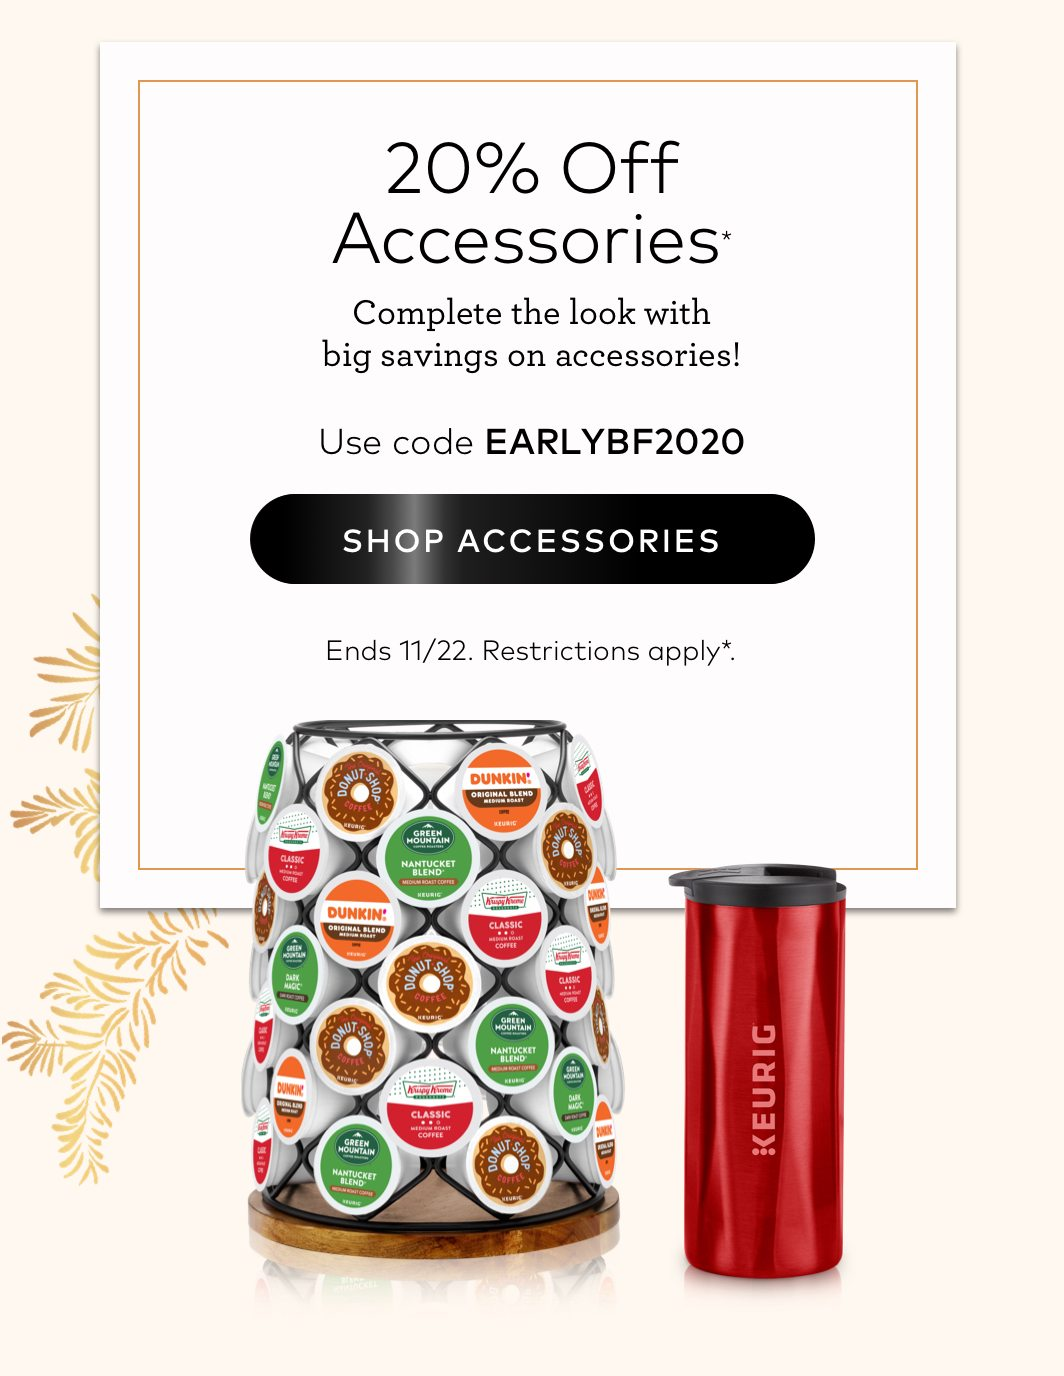 20% off Accessories with EARLYBF2020